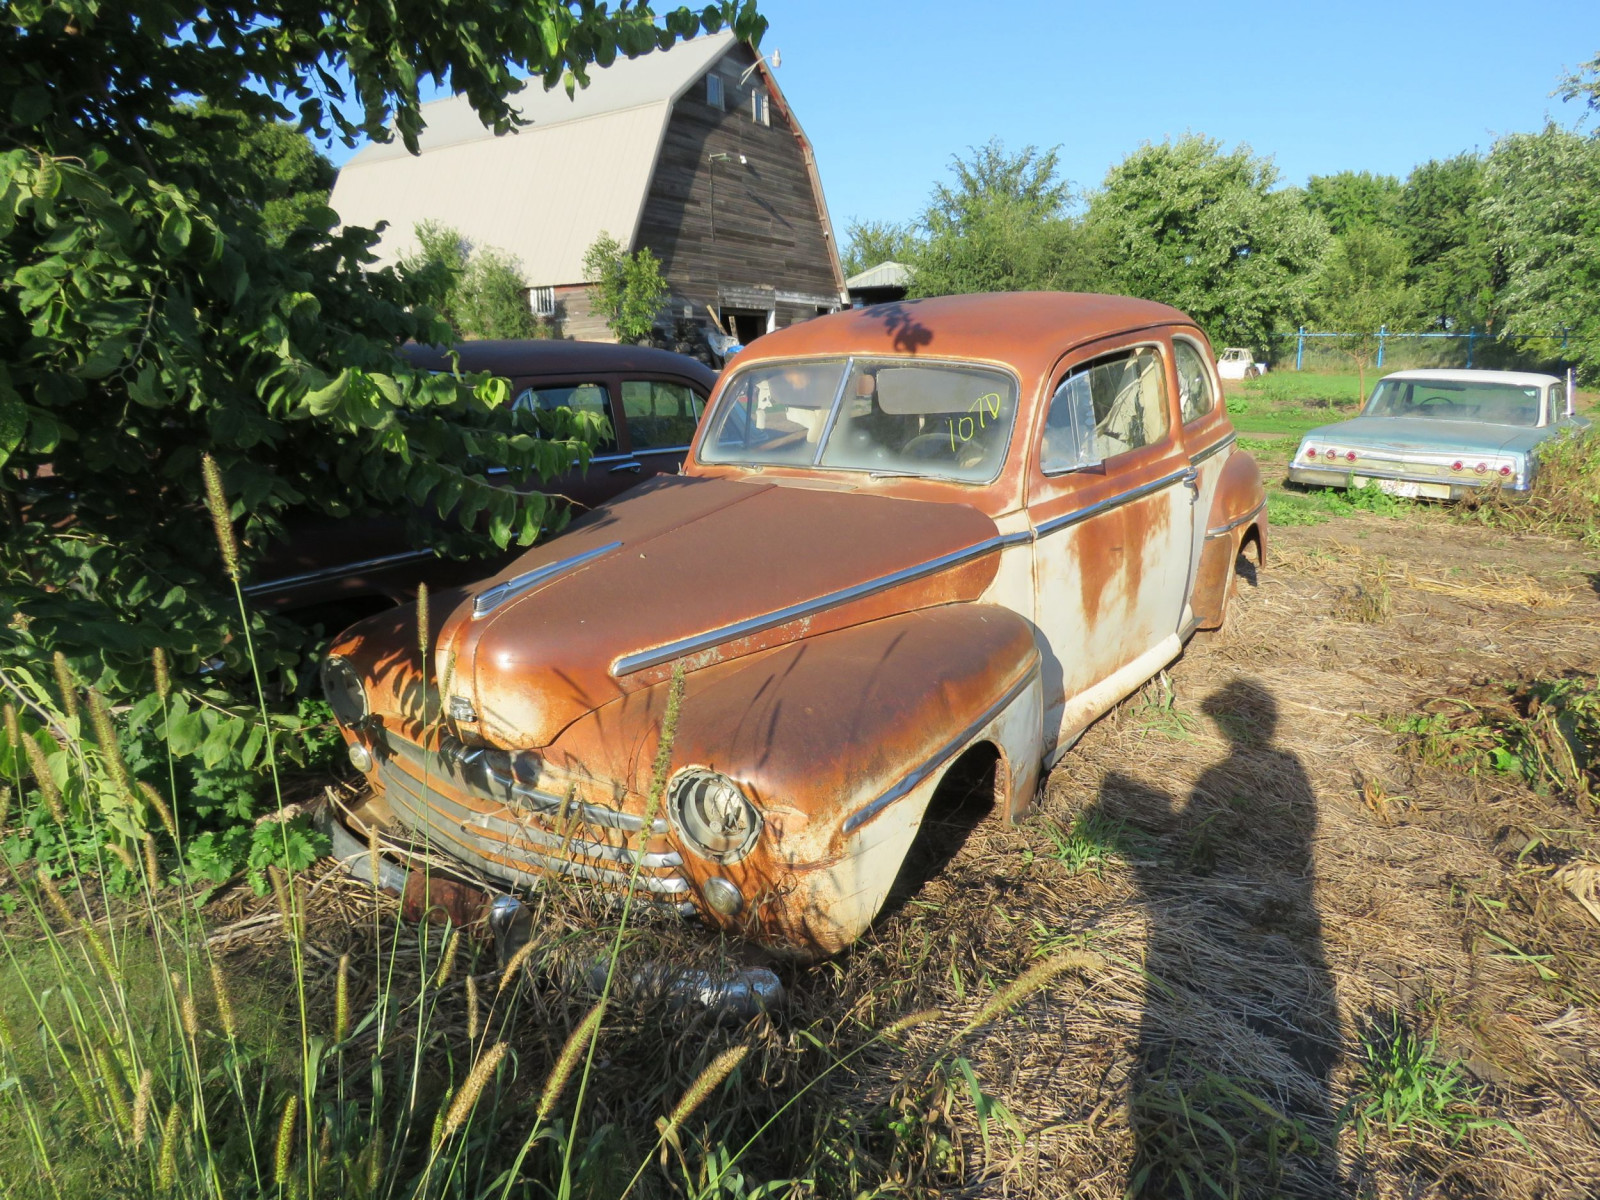 1947/8 Ford 2dr Sedan for Project or Parts - Image 1